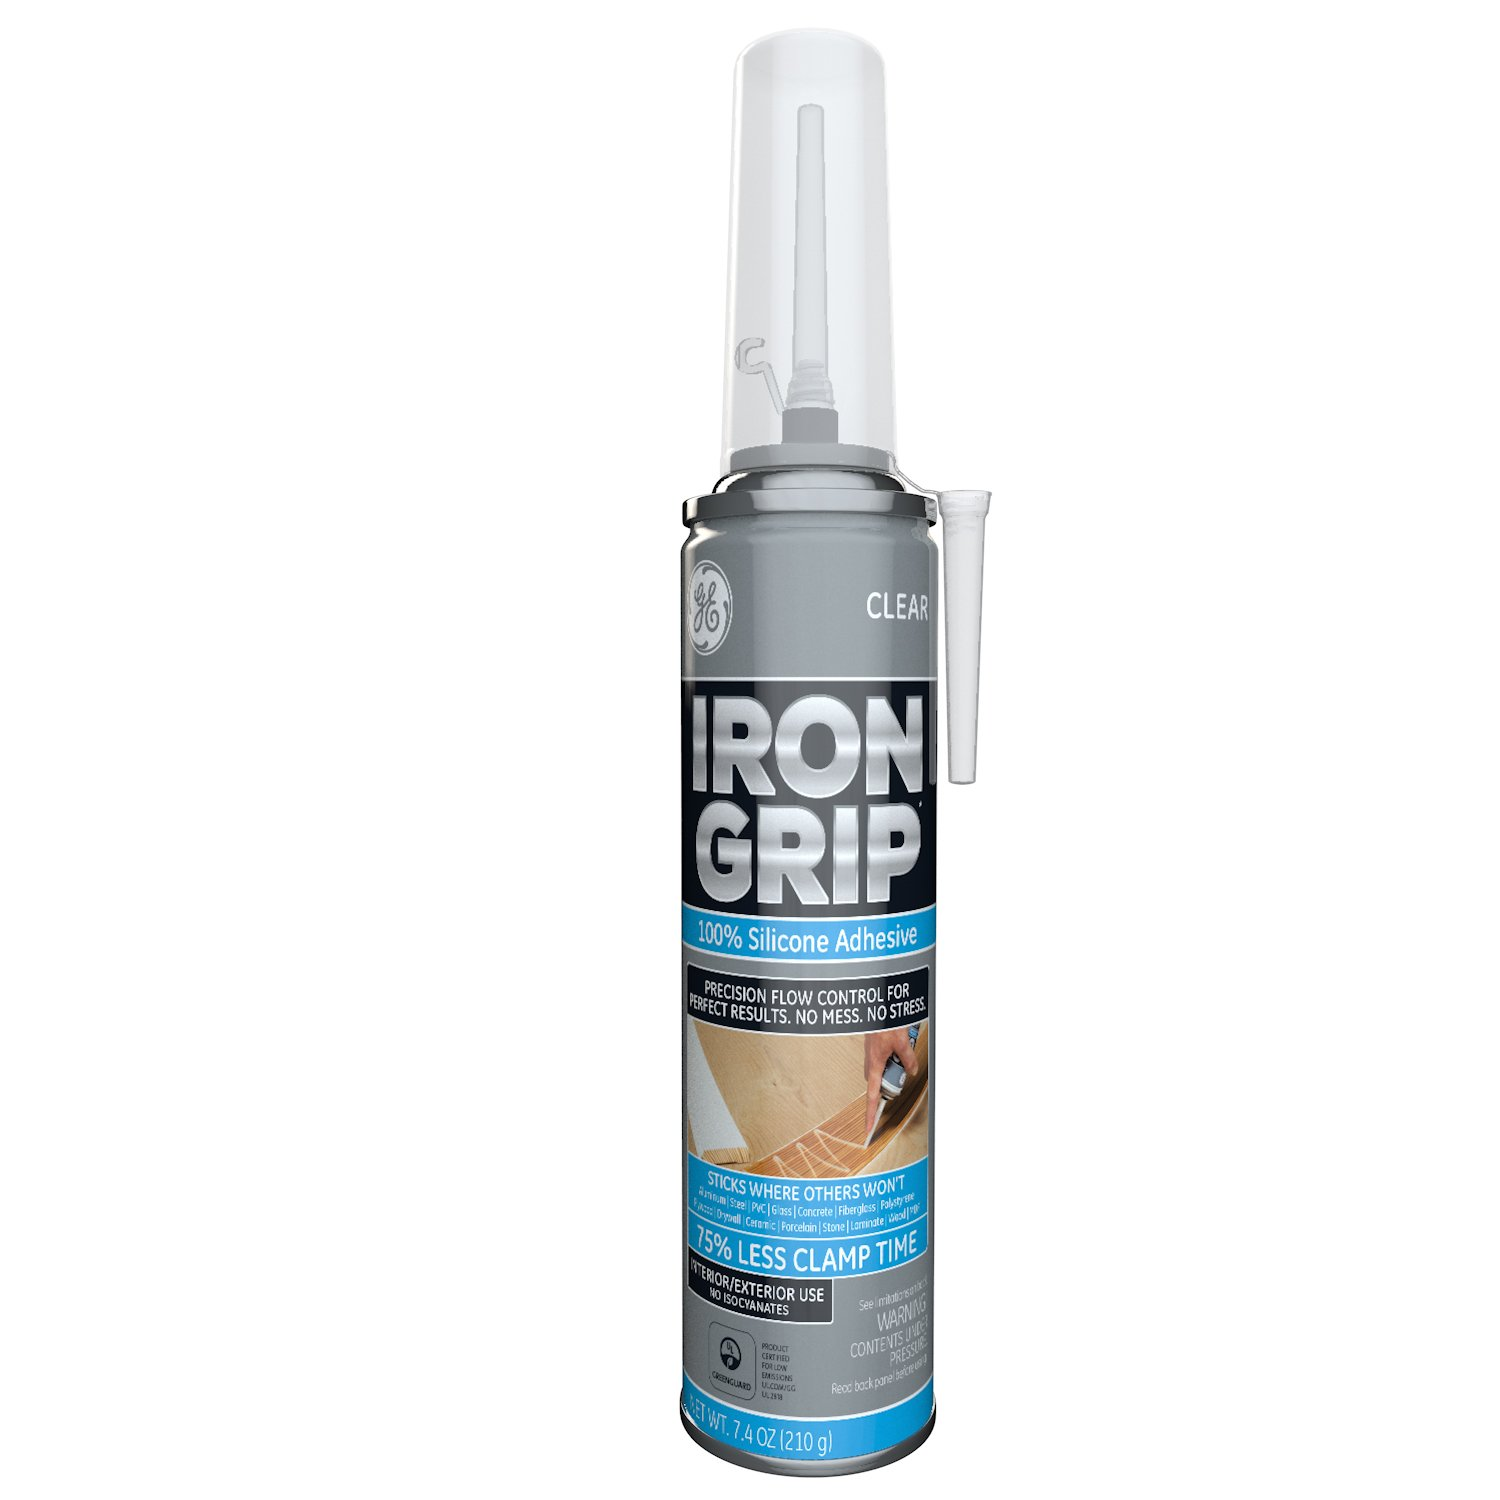 GE M90077 Point & Seal Iron Grip Adhesive 7.4 oz Point & Seal